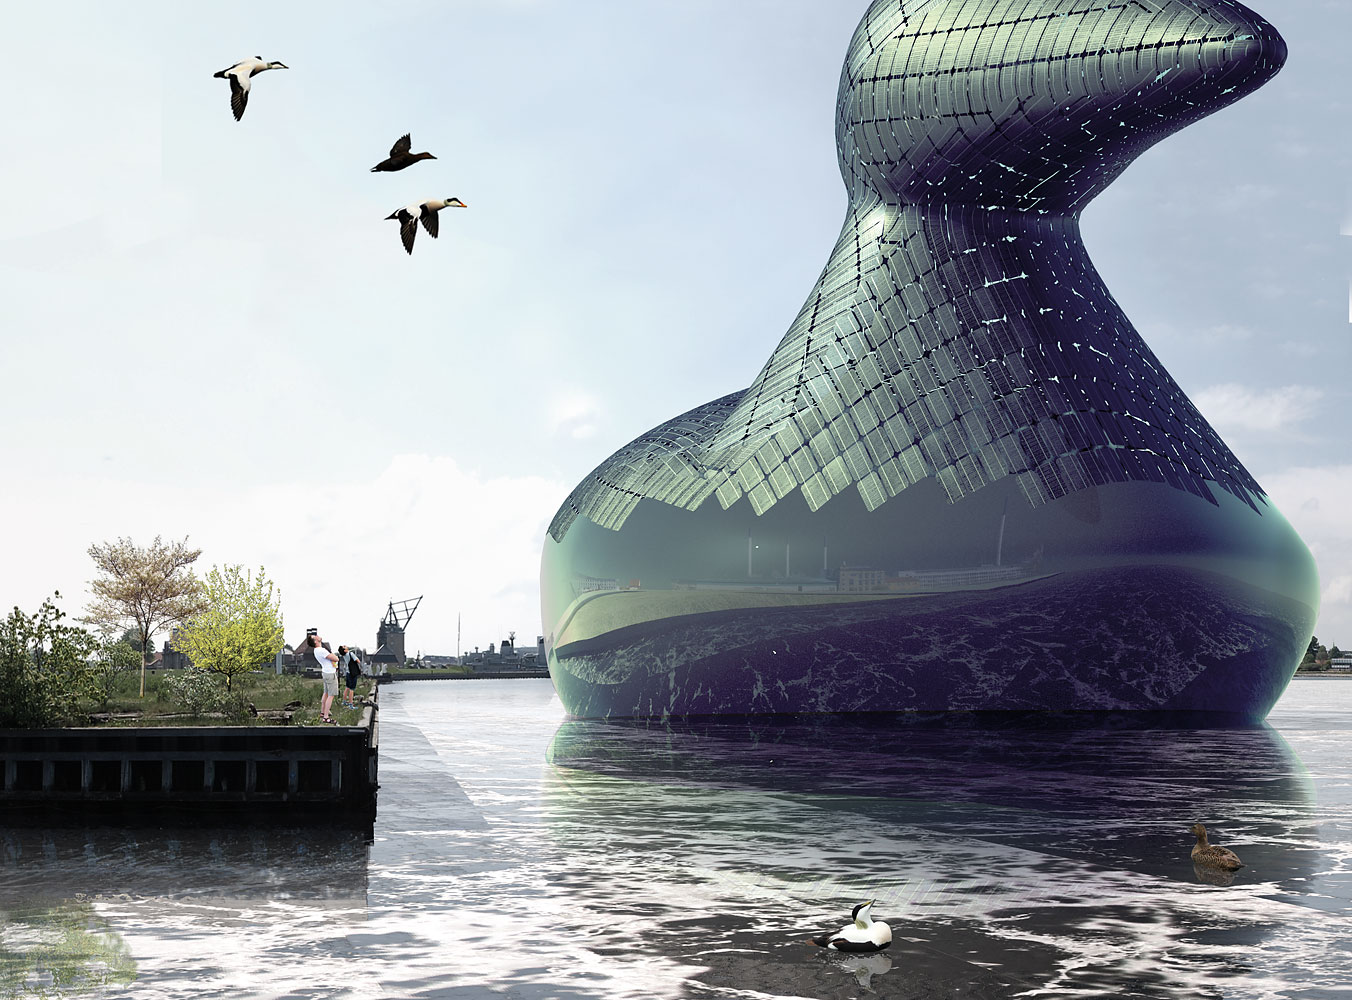 Energy Duck: A submission to the 2014 Land Art Generator Initiative Copenhagen design competition by artists Hareth Pochee, Adam Khan, Louis Leger and Patrick Fryer.